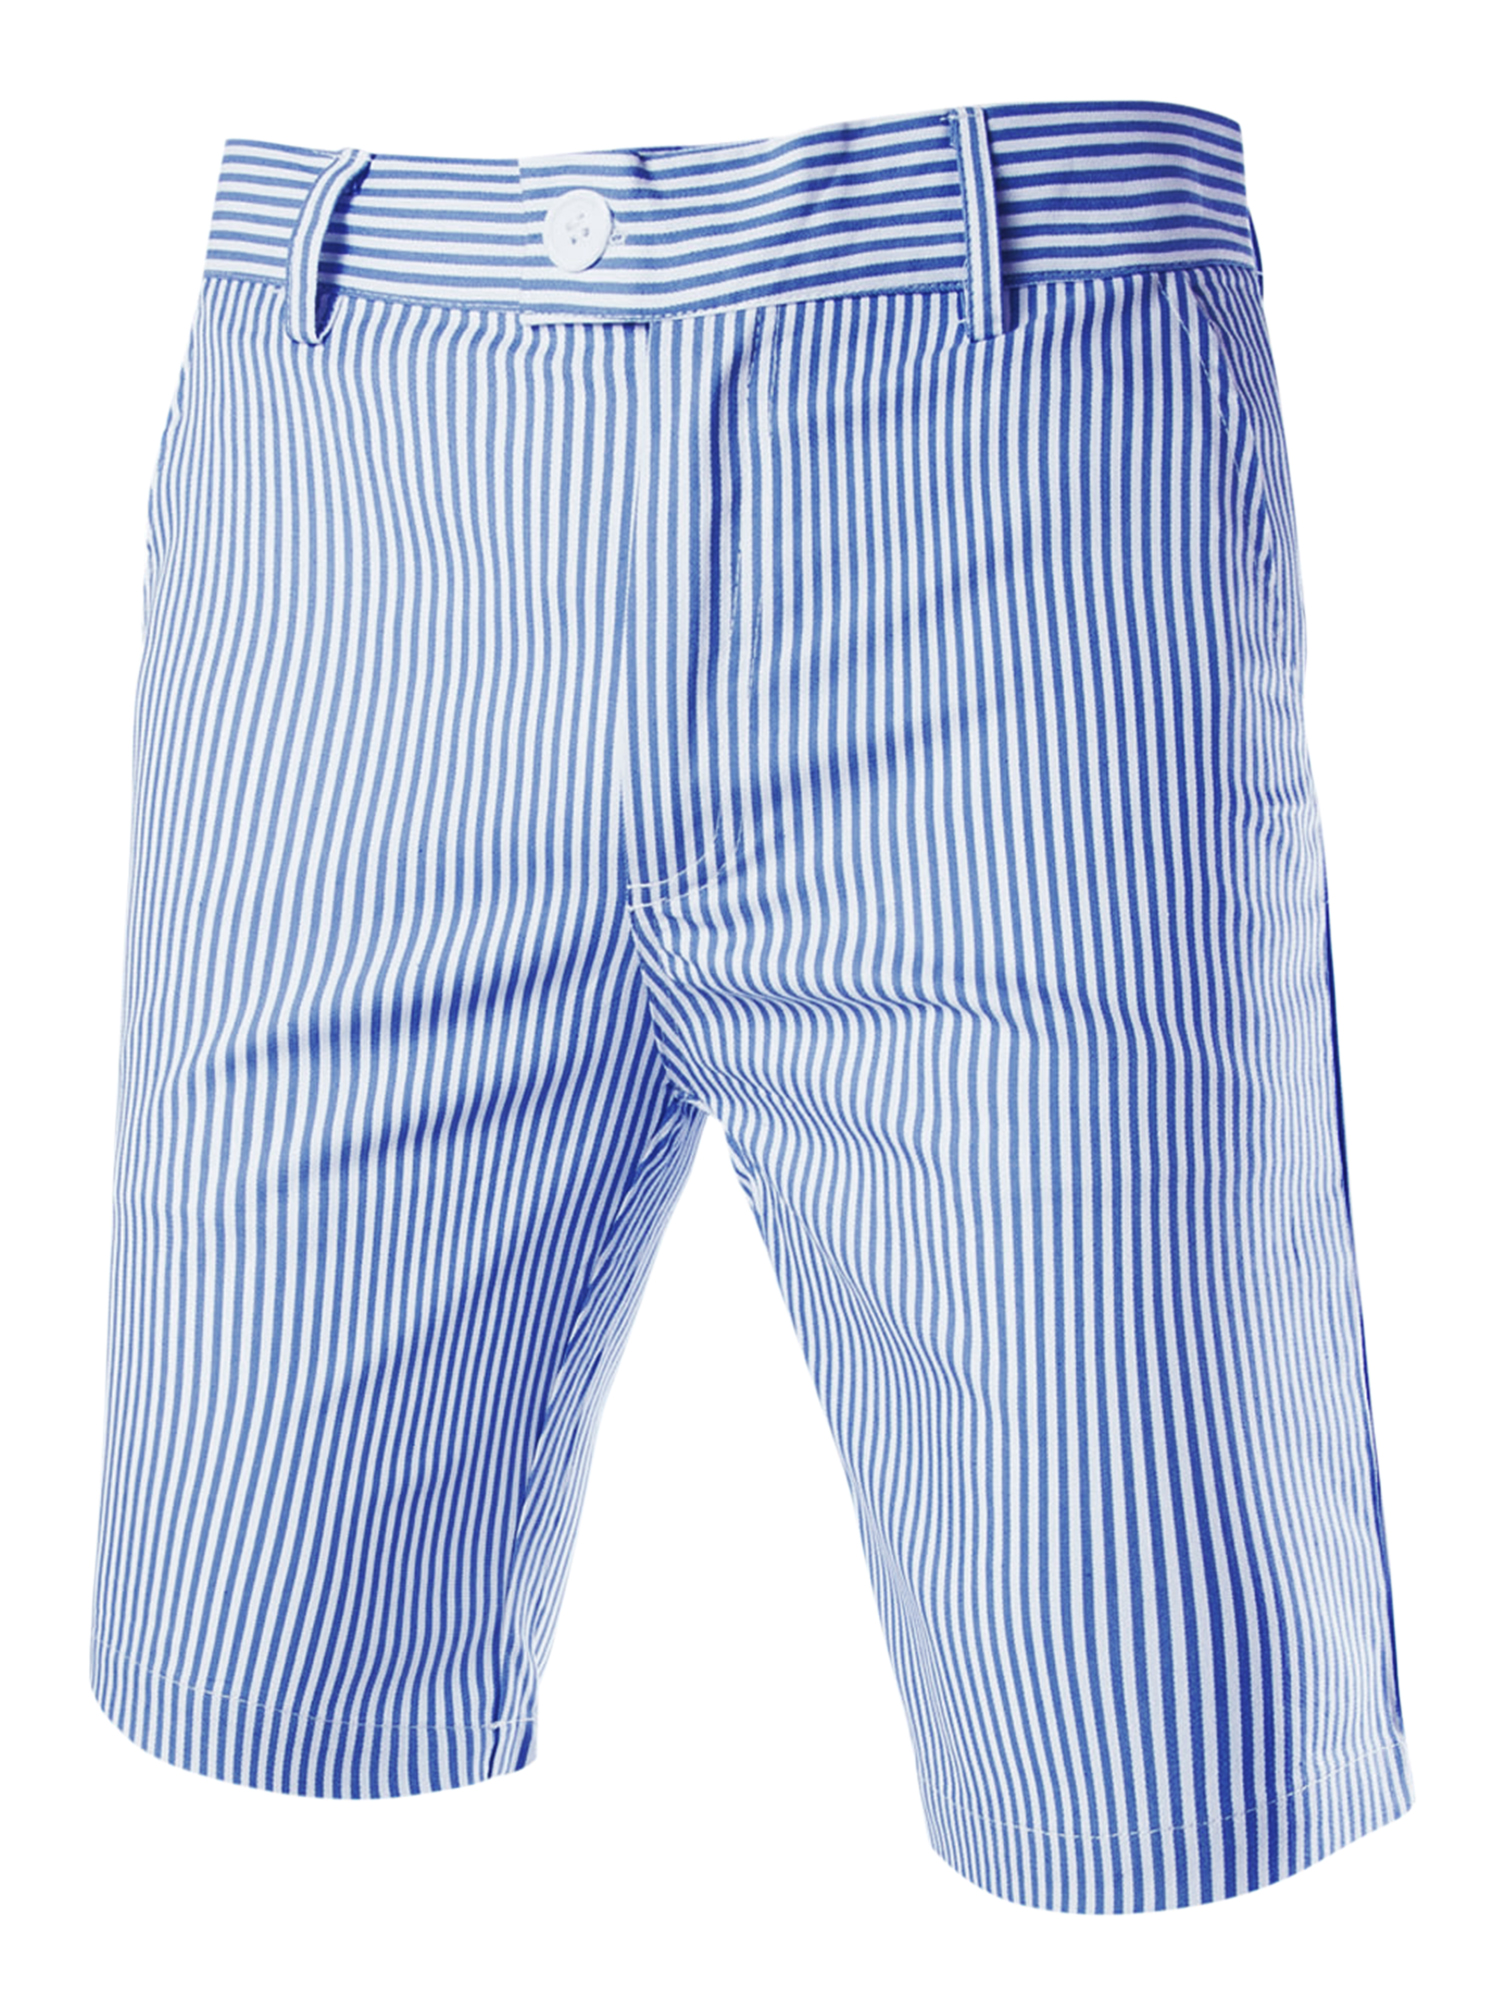 Men Stripes Flat Front Plain-Front Mid Rise Chino Walk Shorts Blue White W34